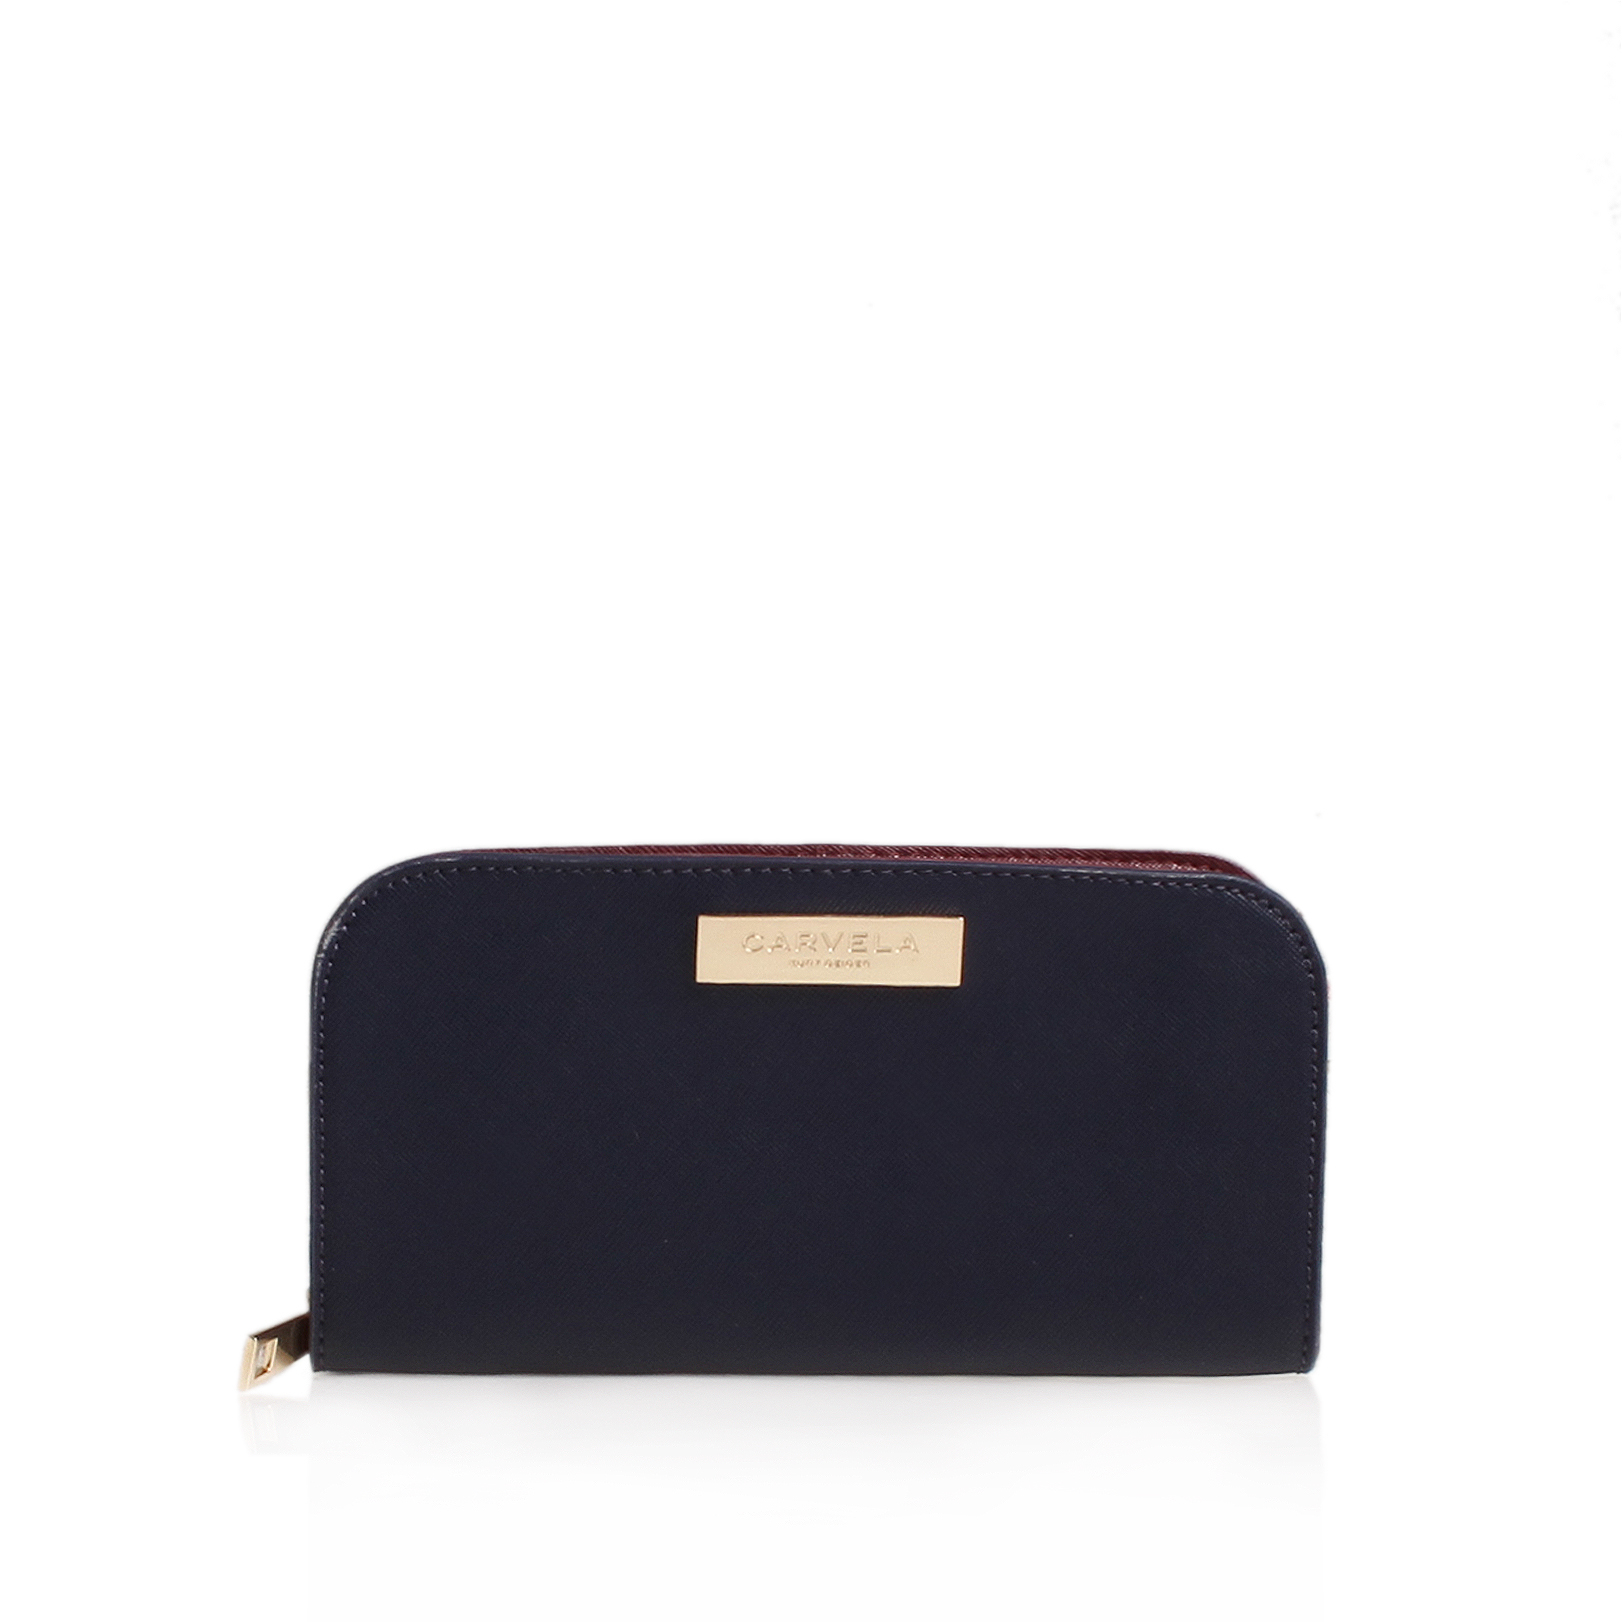 MICH ZIP AROUND WALLET